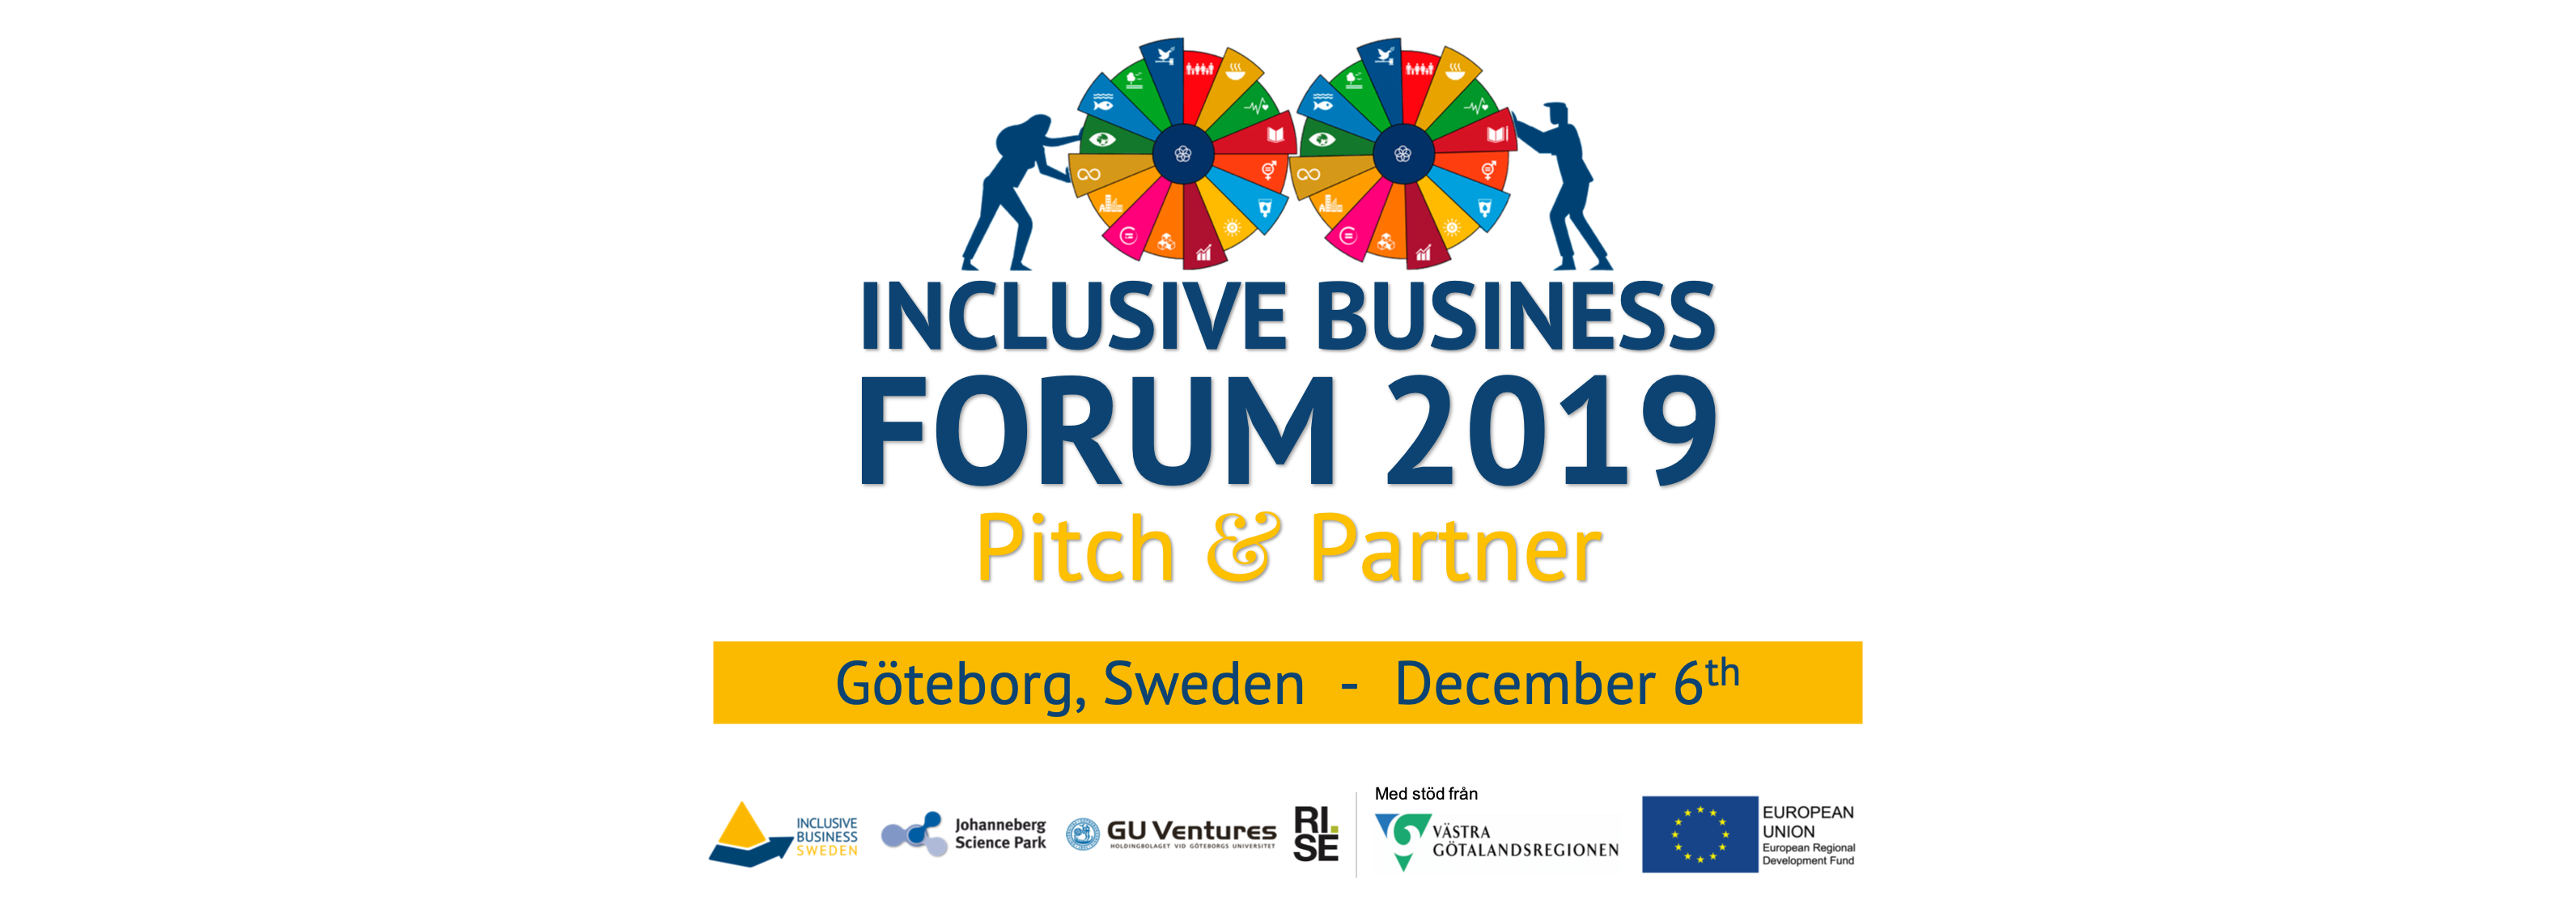 Inclusive Business Forum